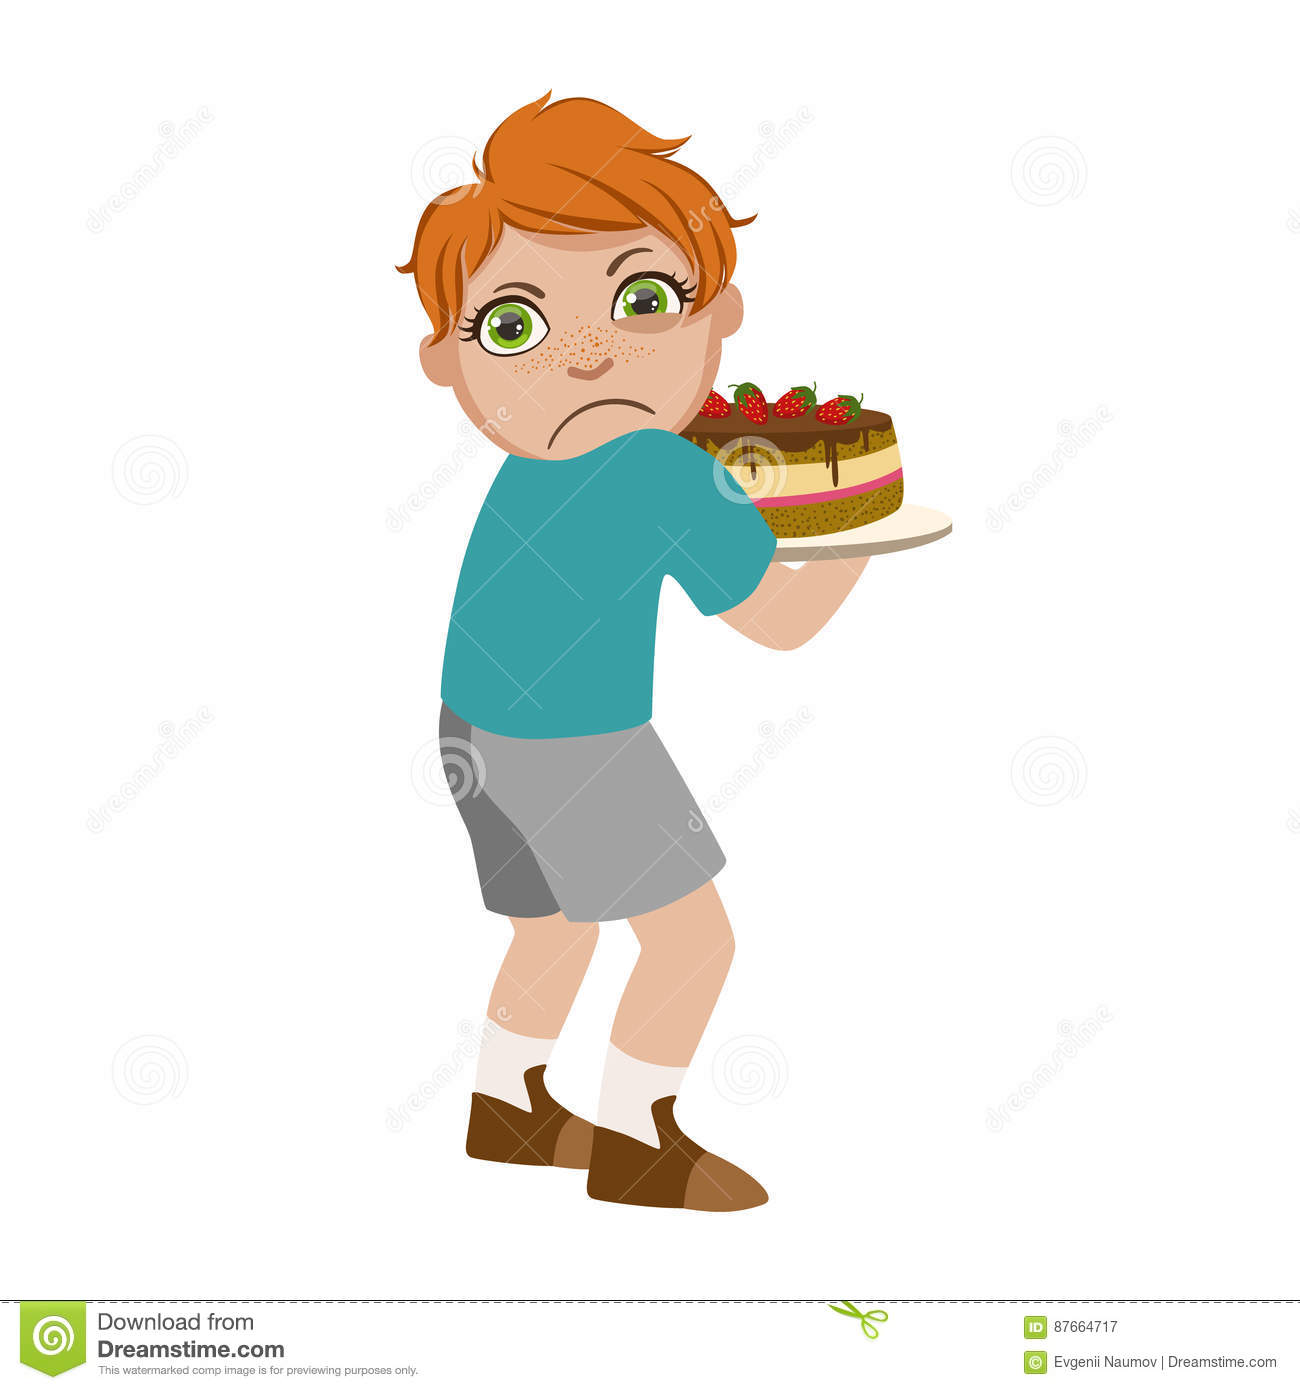 Greedy Boy Not Sharing Cake, Part Of Bad Kids Behavior And Bullies Series Of Vector Illustrations With Characters Being